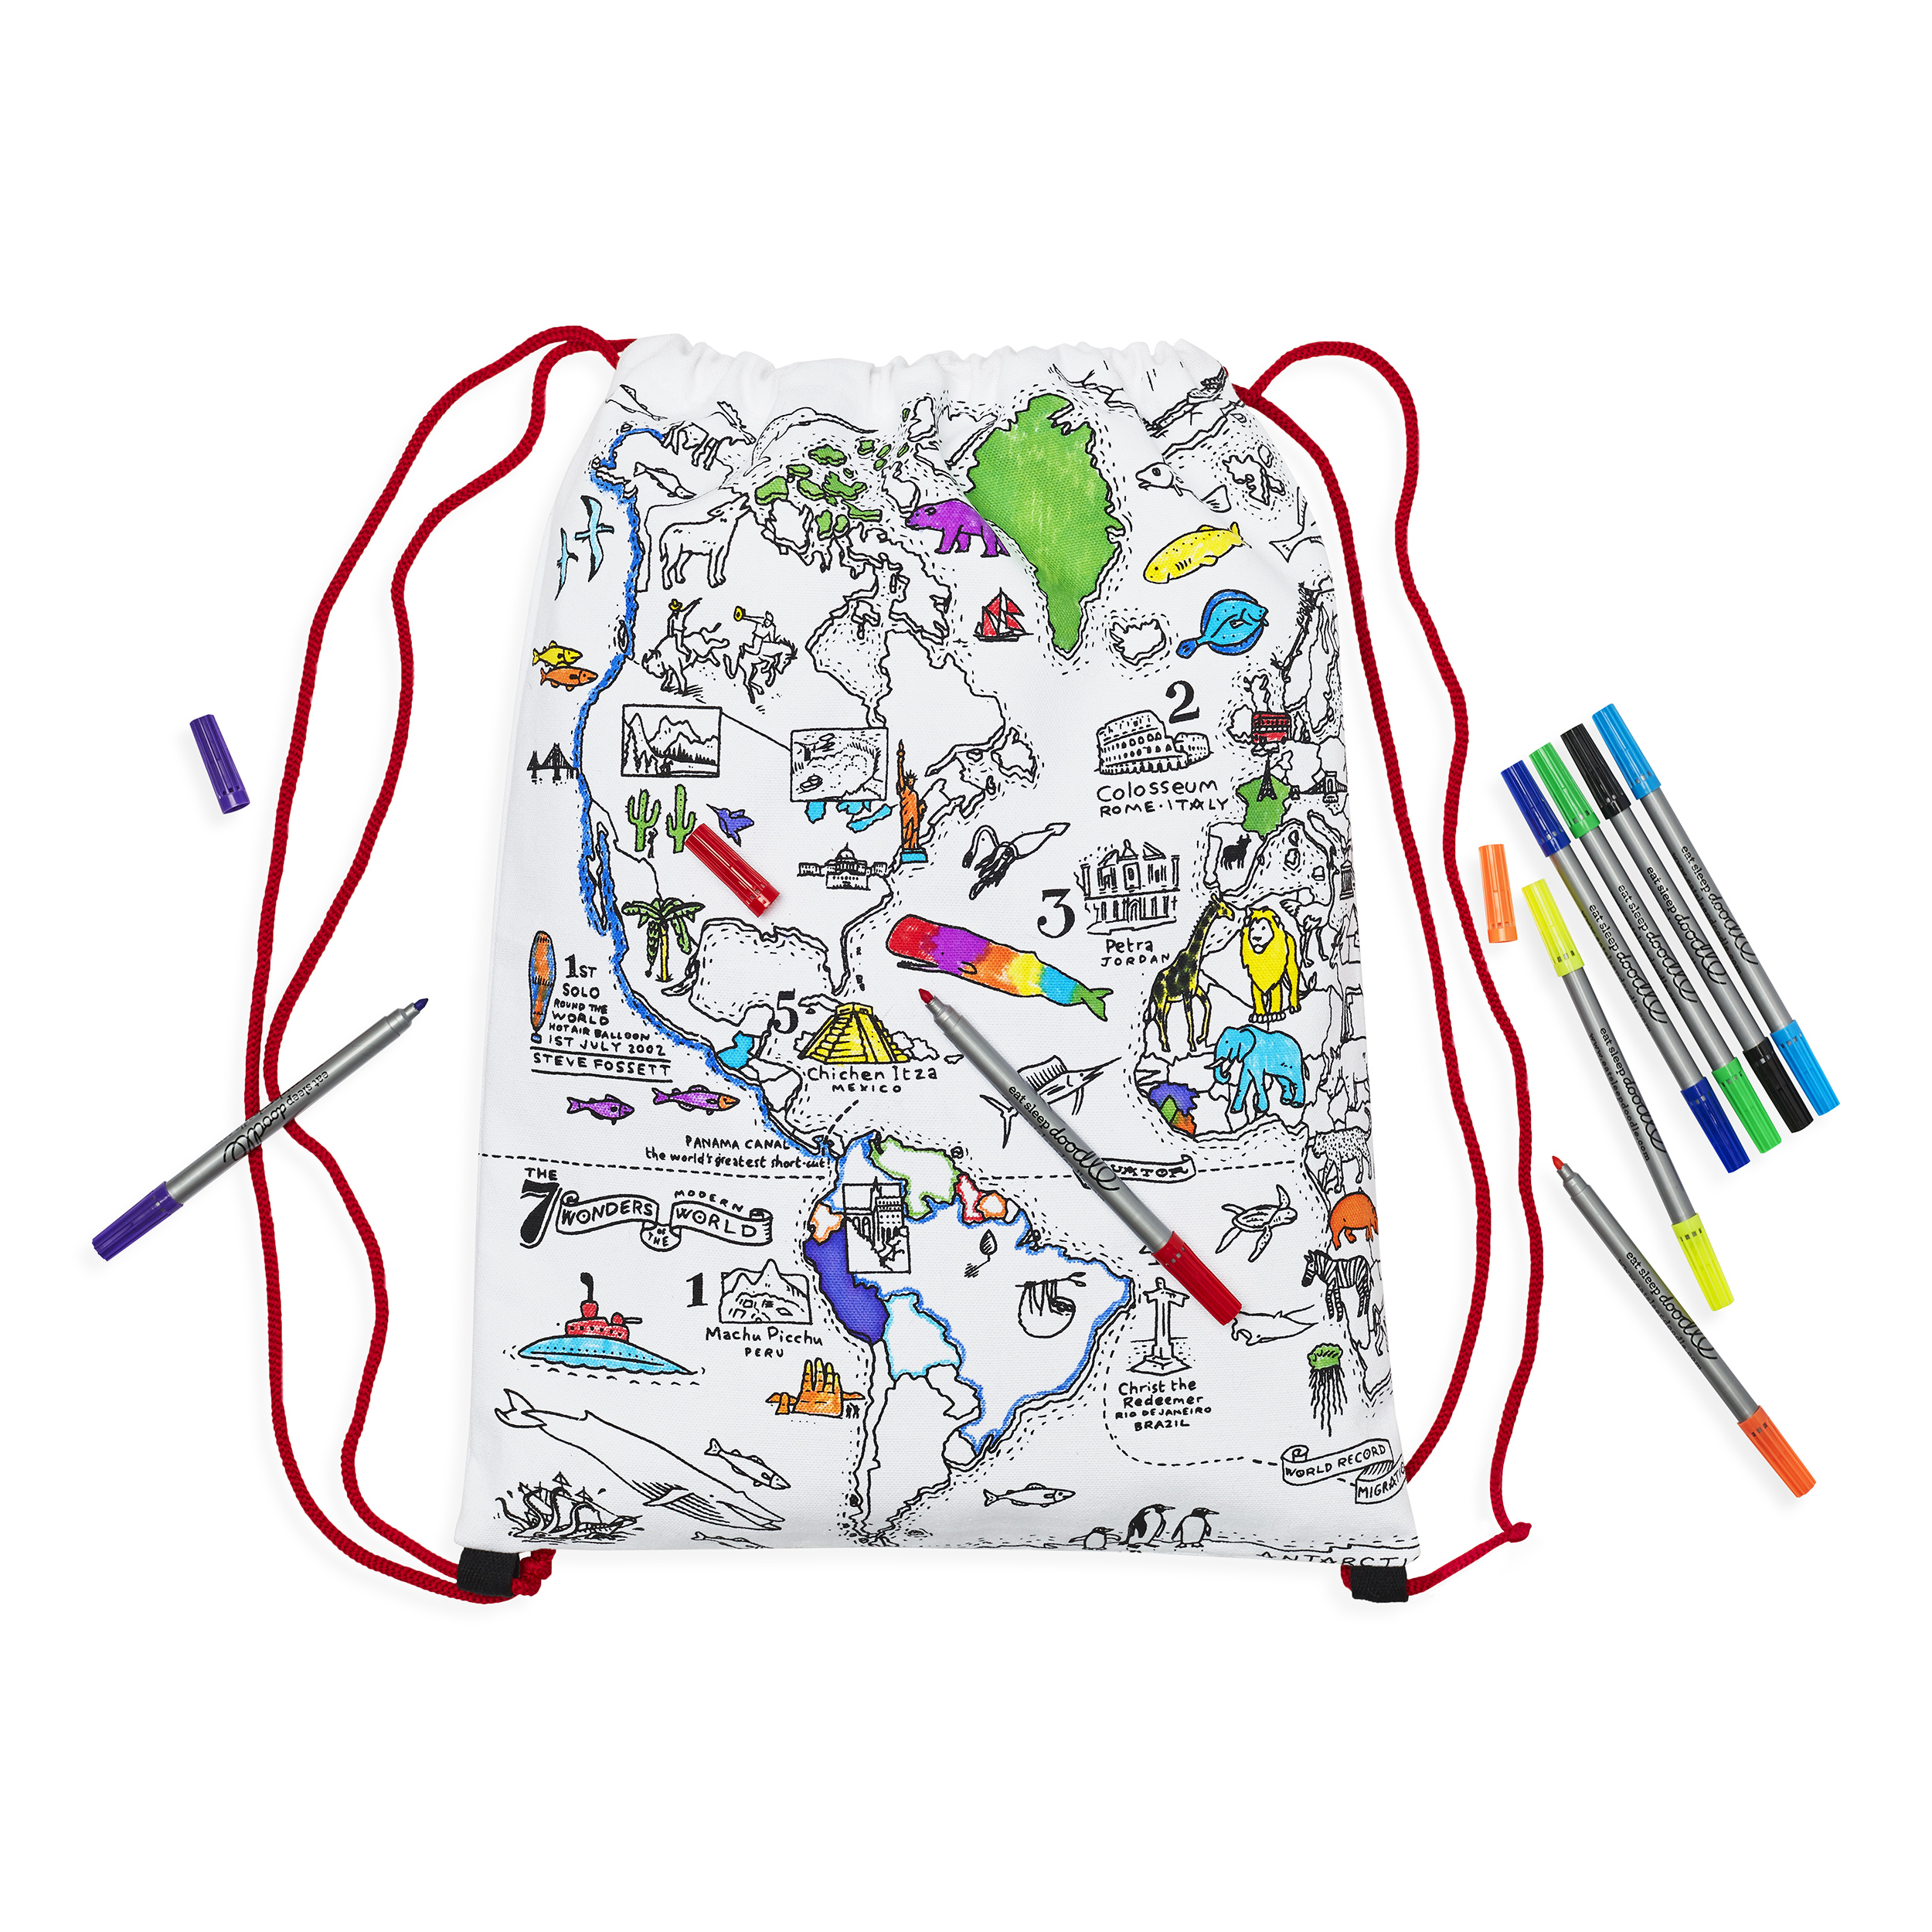 Craenen eat sleep doodle the world map illustration wraps round the bag like a globe so you can colour in both sides 100 cotton and complete with 10 wash out markers gumiabroncs Image collections